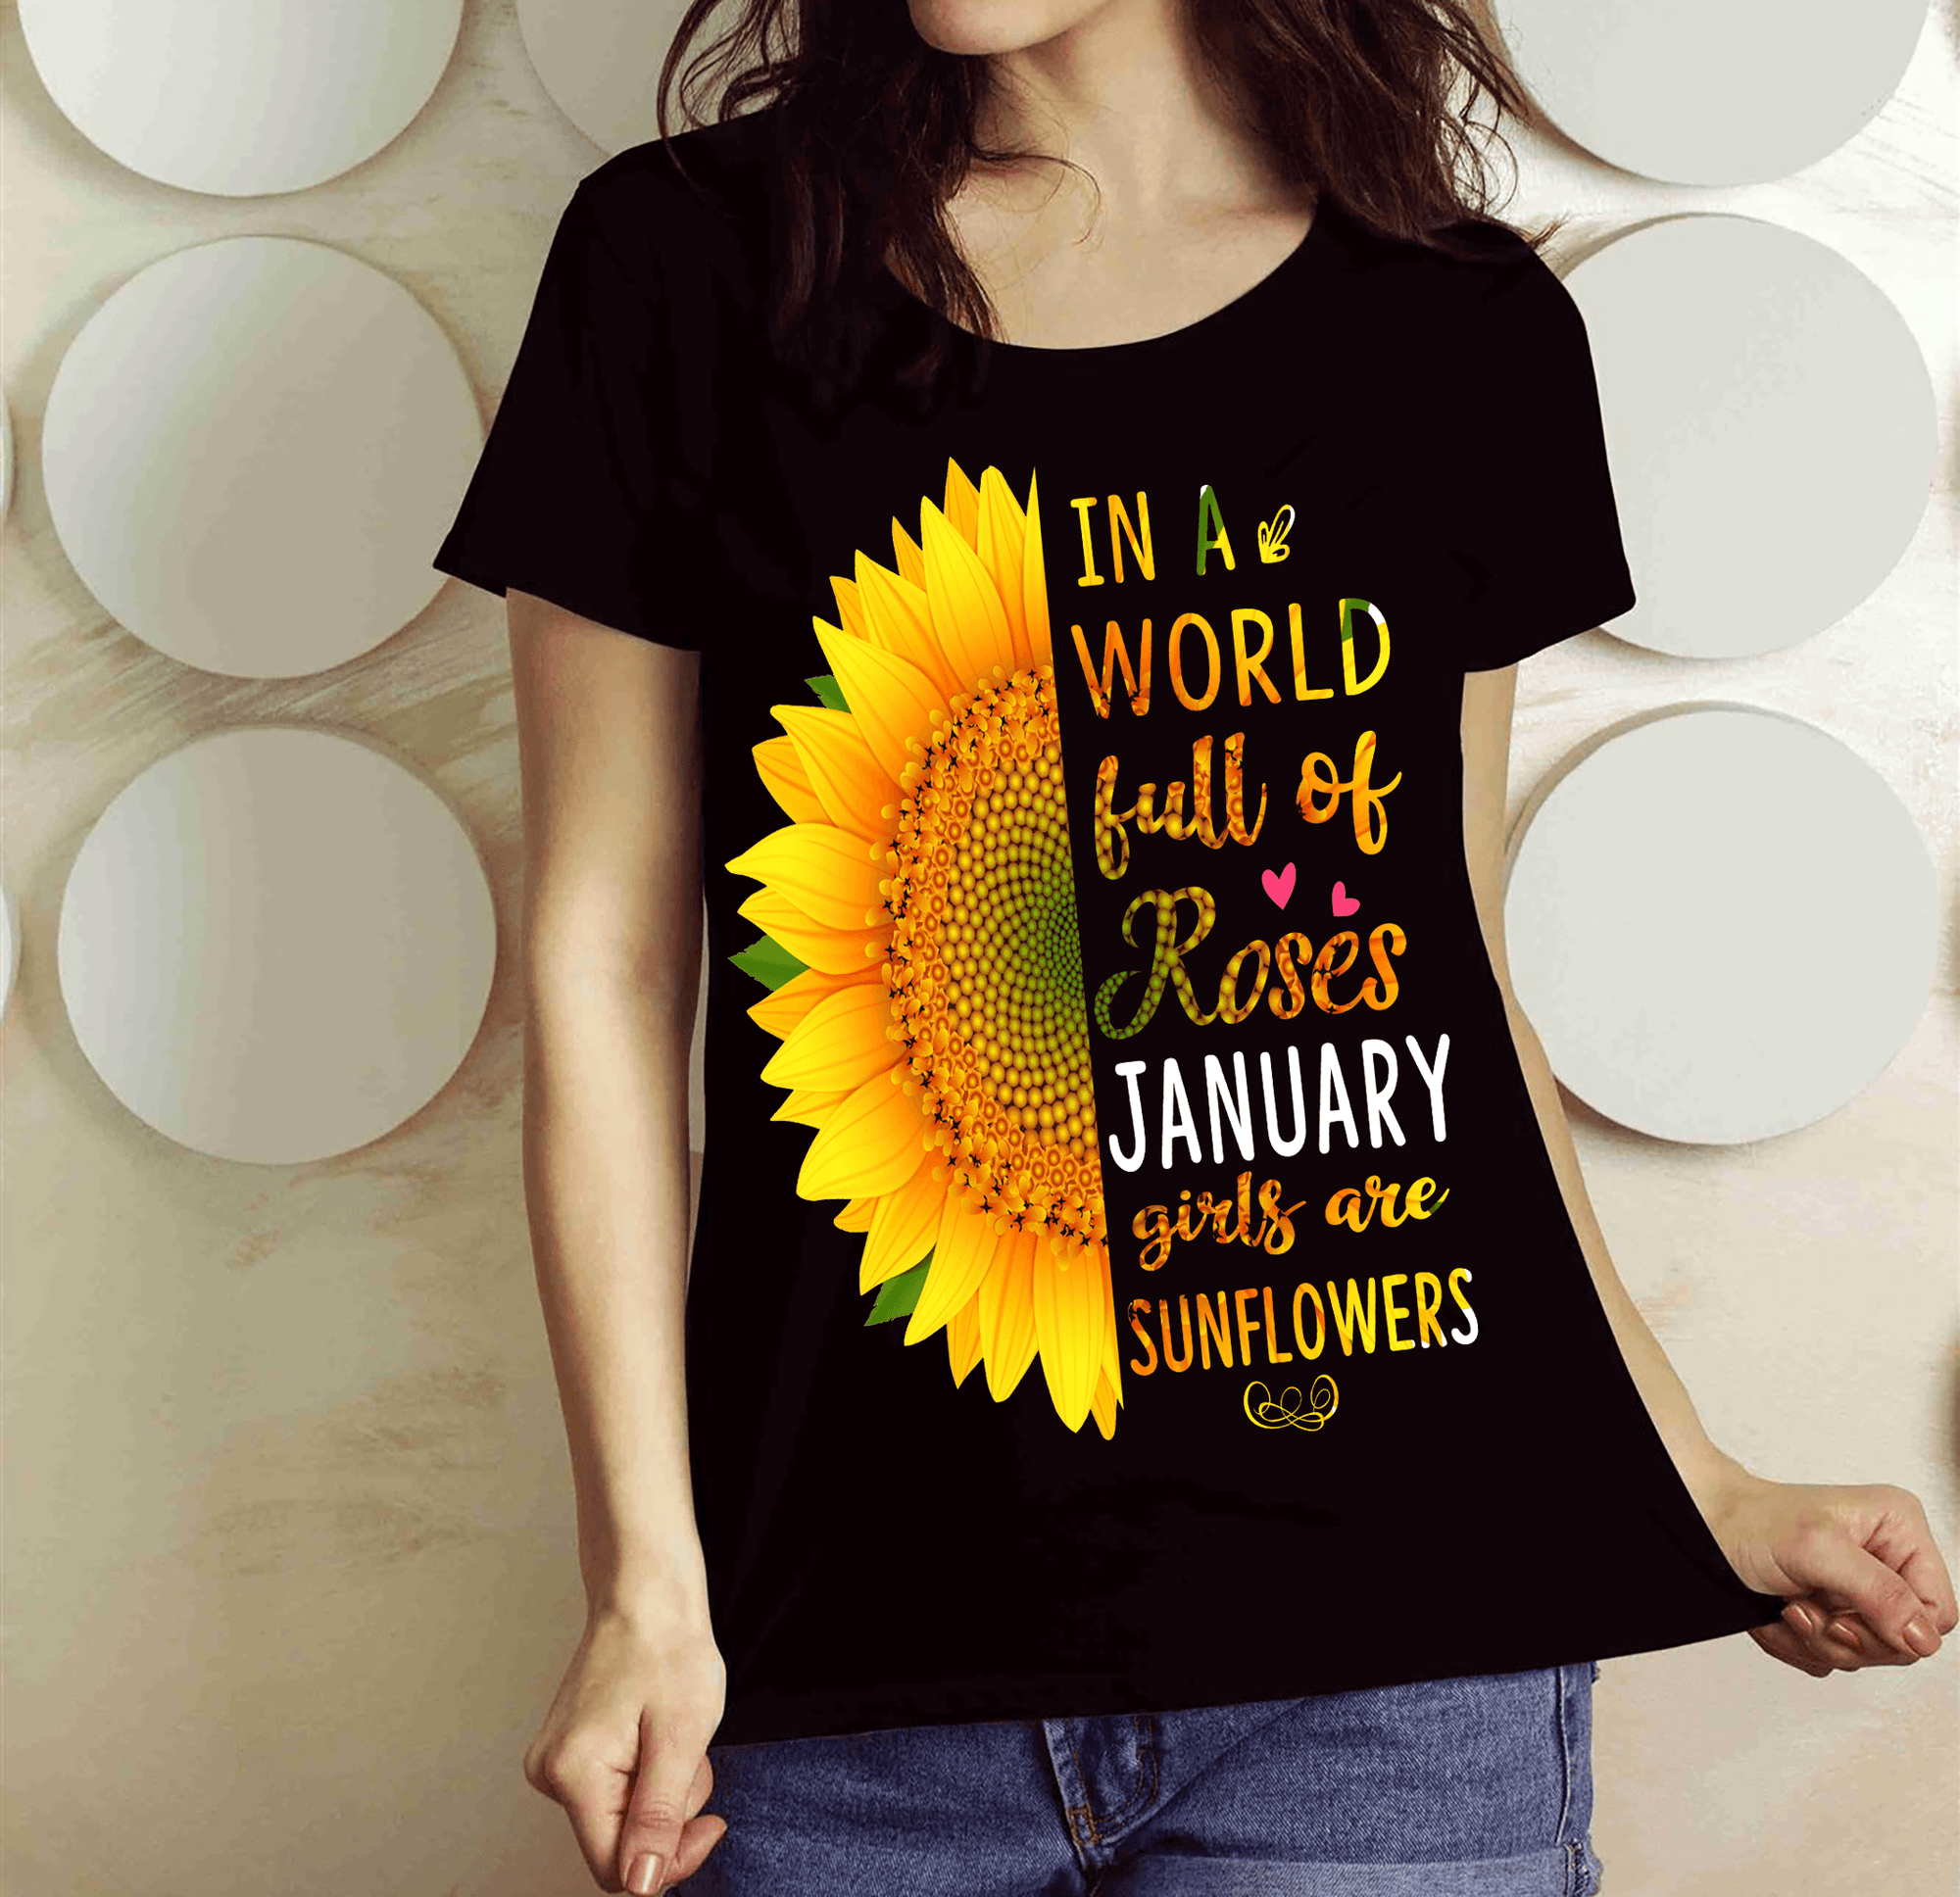 """In A World Full Of Roses January Girls are Sunflowers"" FLAT SHIPPING (Special Discount) - LA Shirt Company"